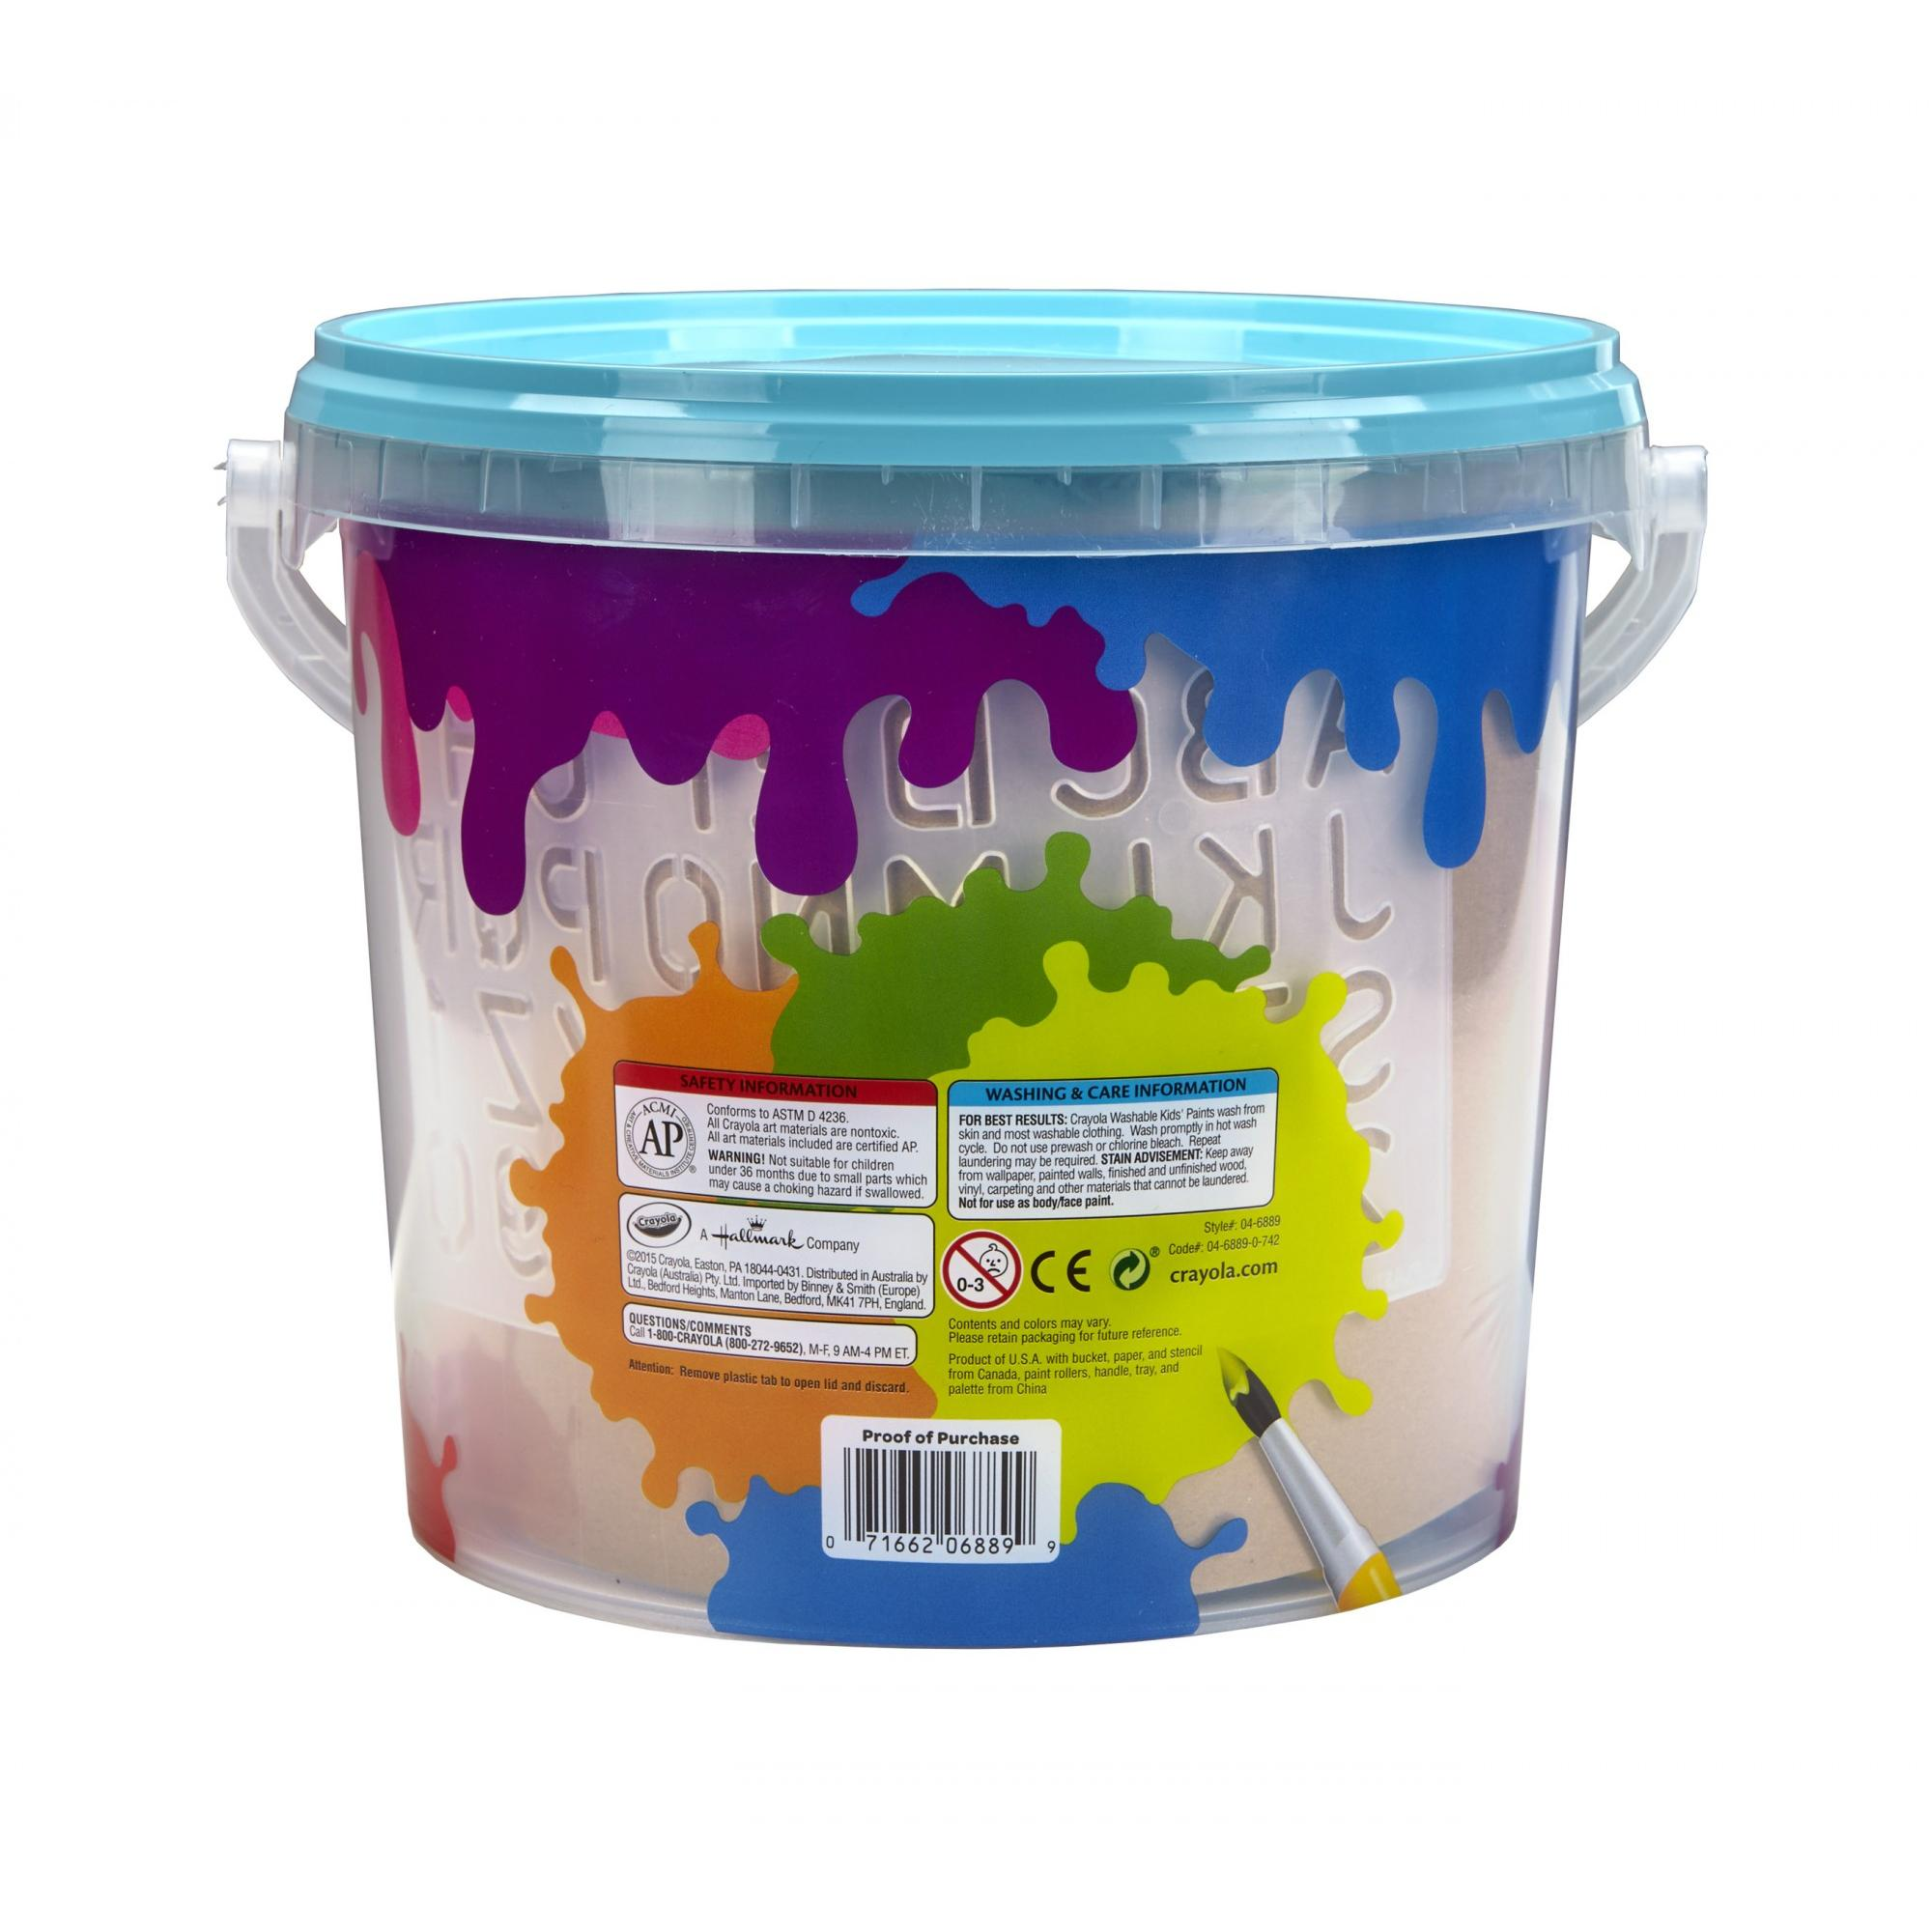 washable paint for wallsCrayola AllinOne Creative Paint Can Blue Great Gift for Kids